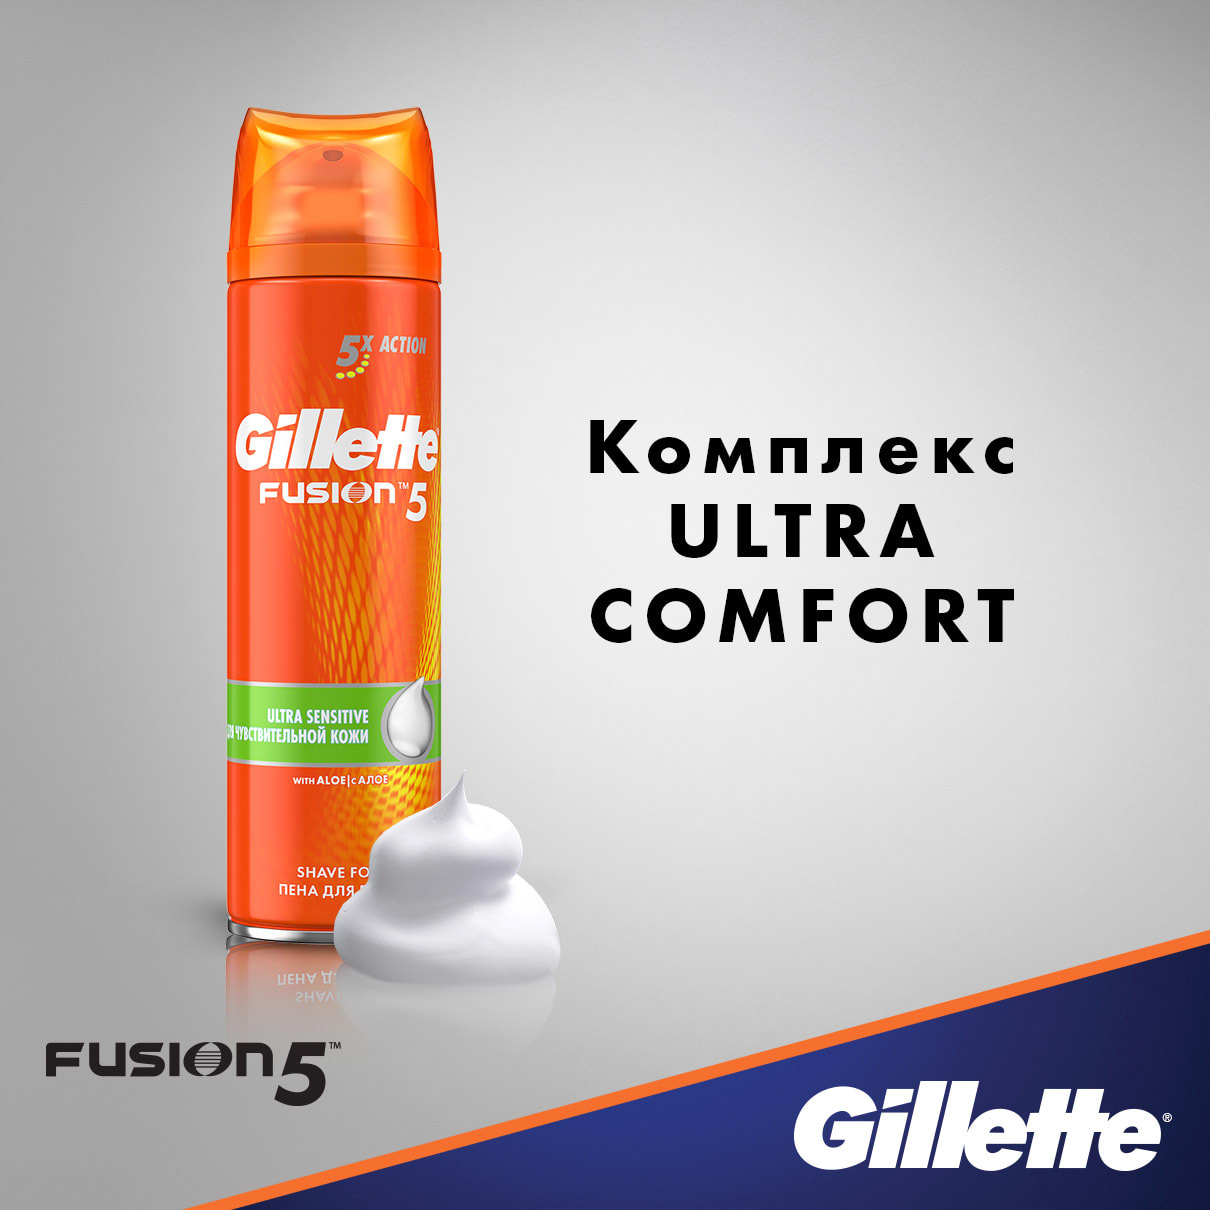 Комплекс Ultra Comfort I Пена для бритья Gillette Fusion5 Ultra Sensitive